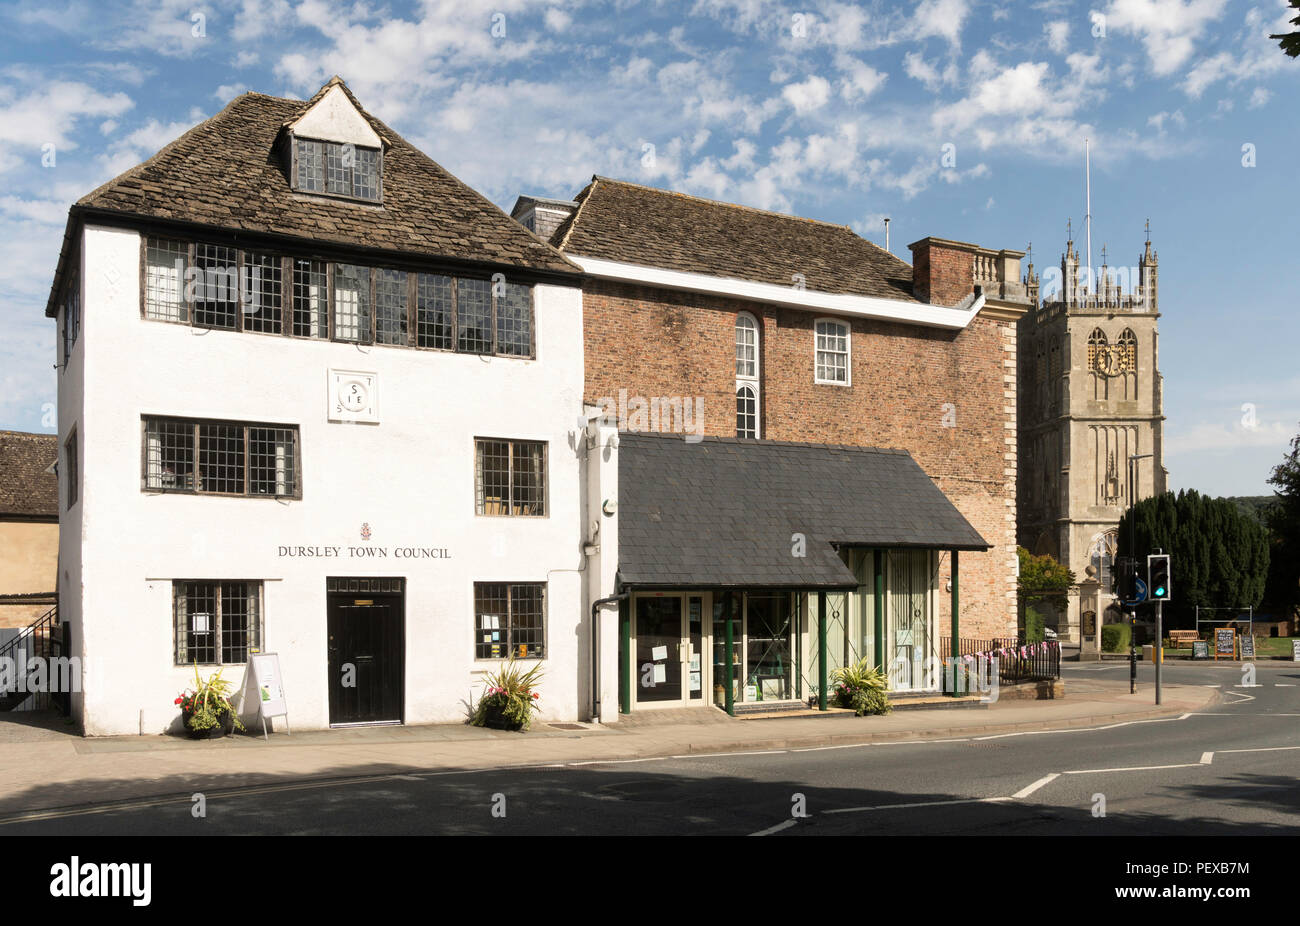 Jacob's House, Dursley town council building, Gloucestershire, England, UK - Stock Image